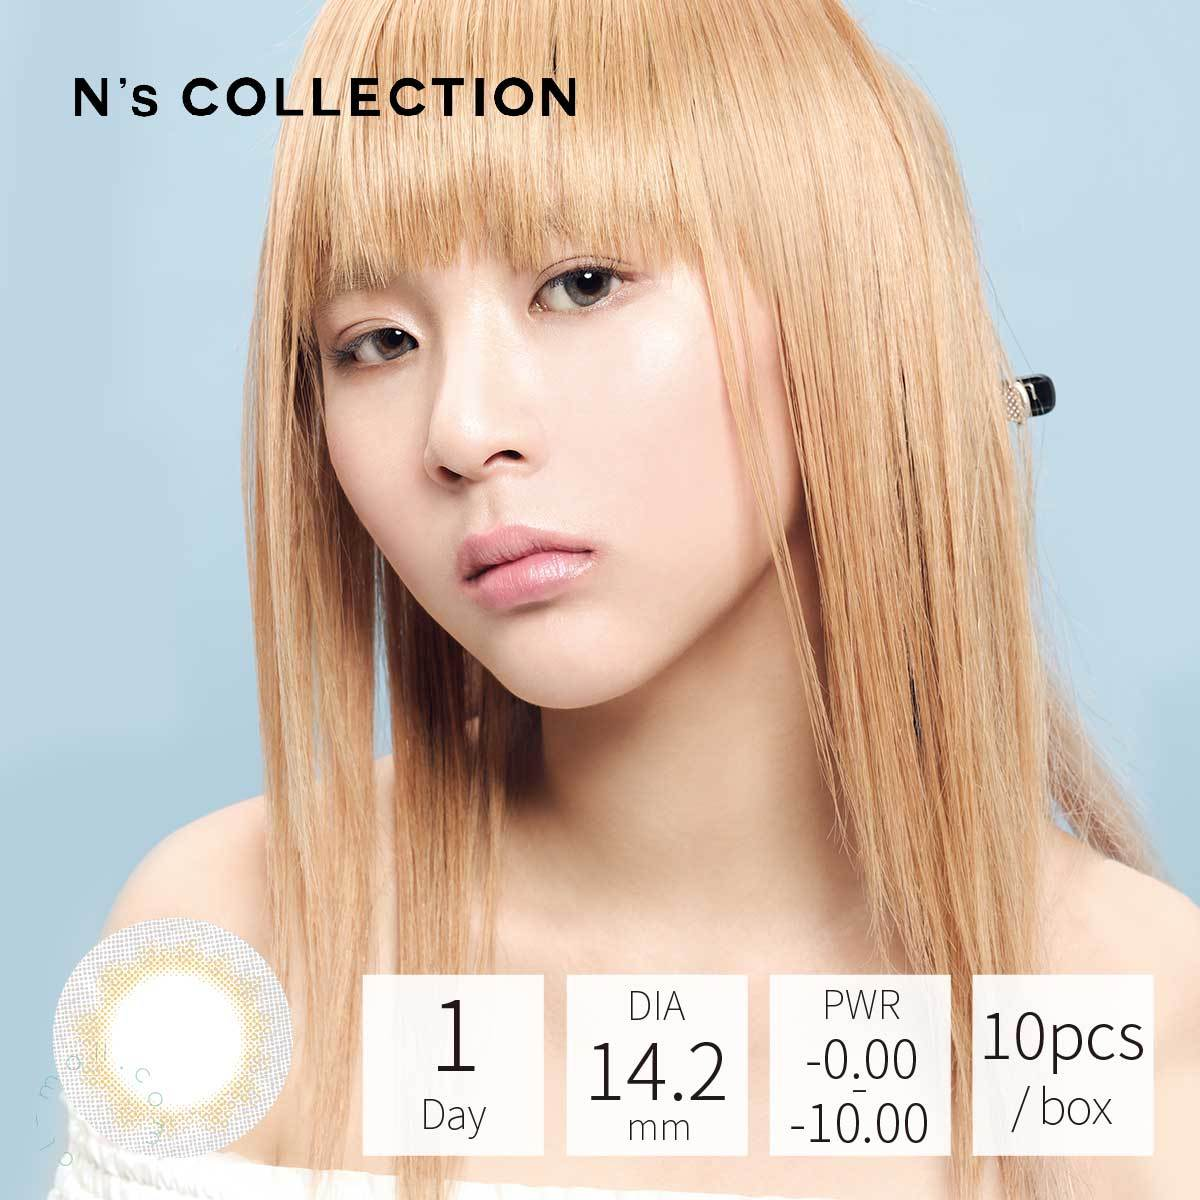 1•DAY PIA N's Collection Cider 10pcs,P:0.00